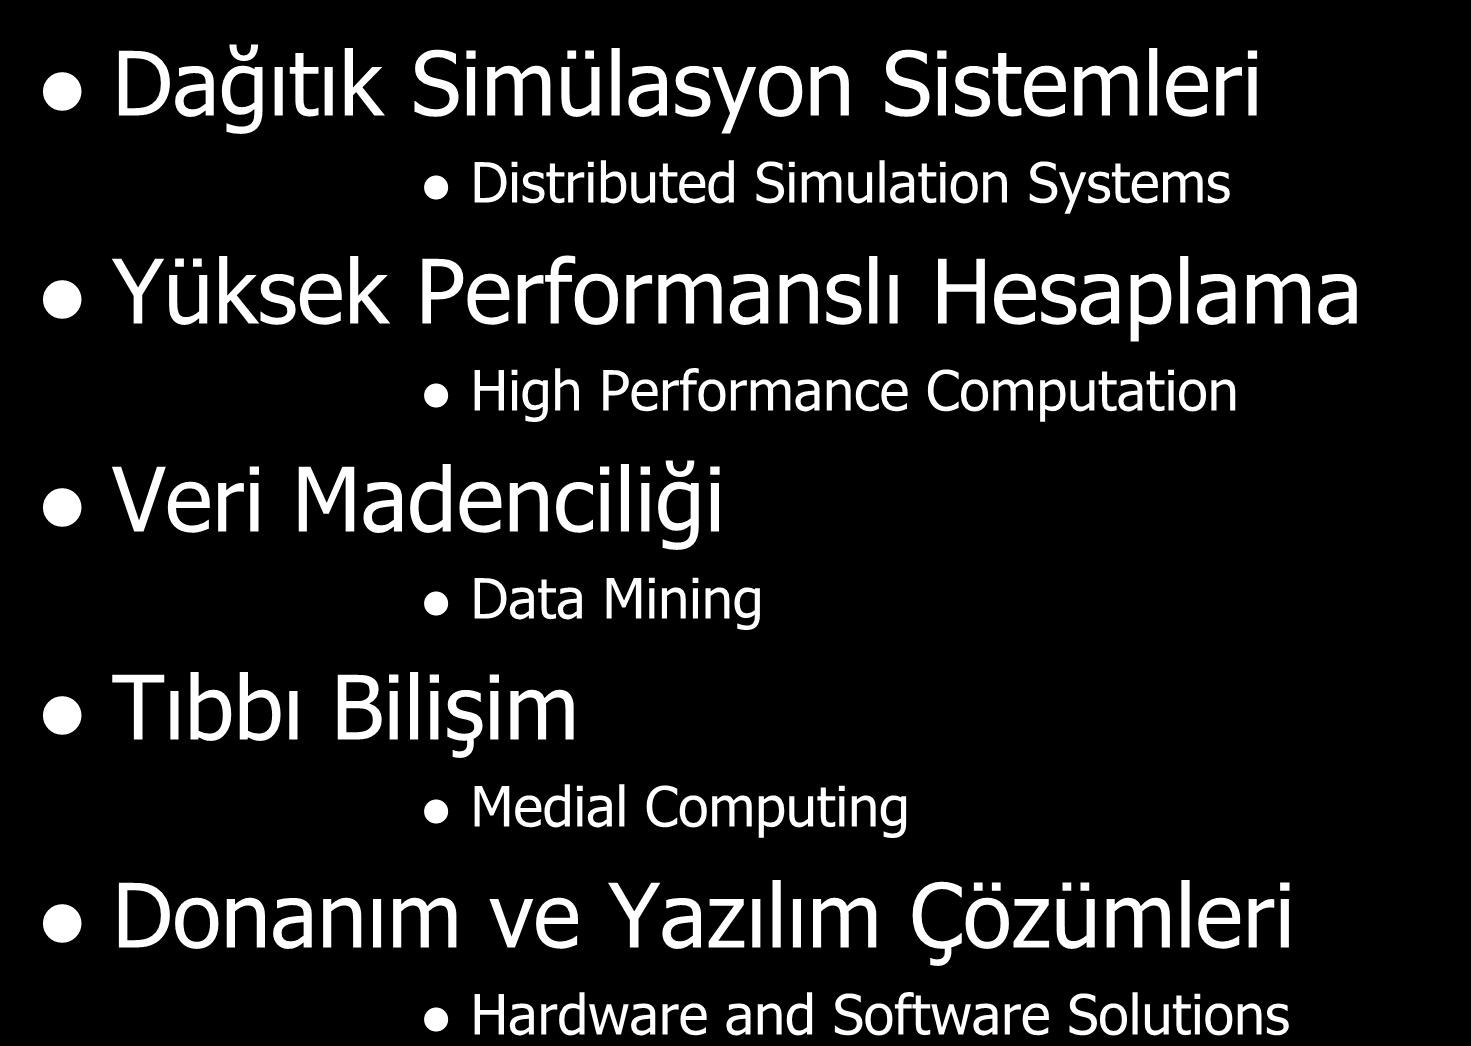 Tıbbı Bilişim High Performance Computation Data Mining Medial Computing